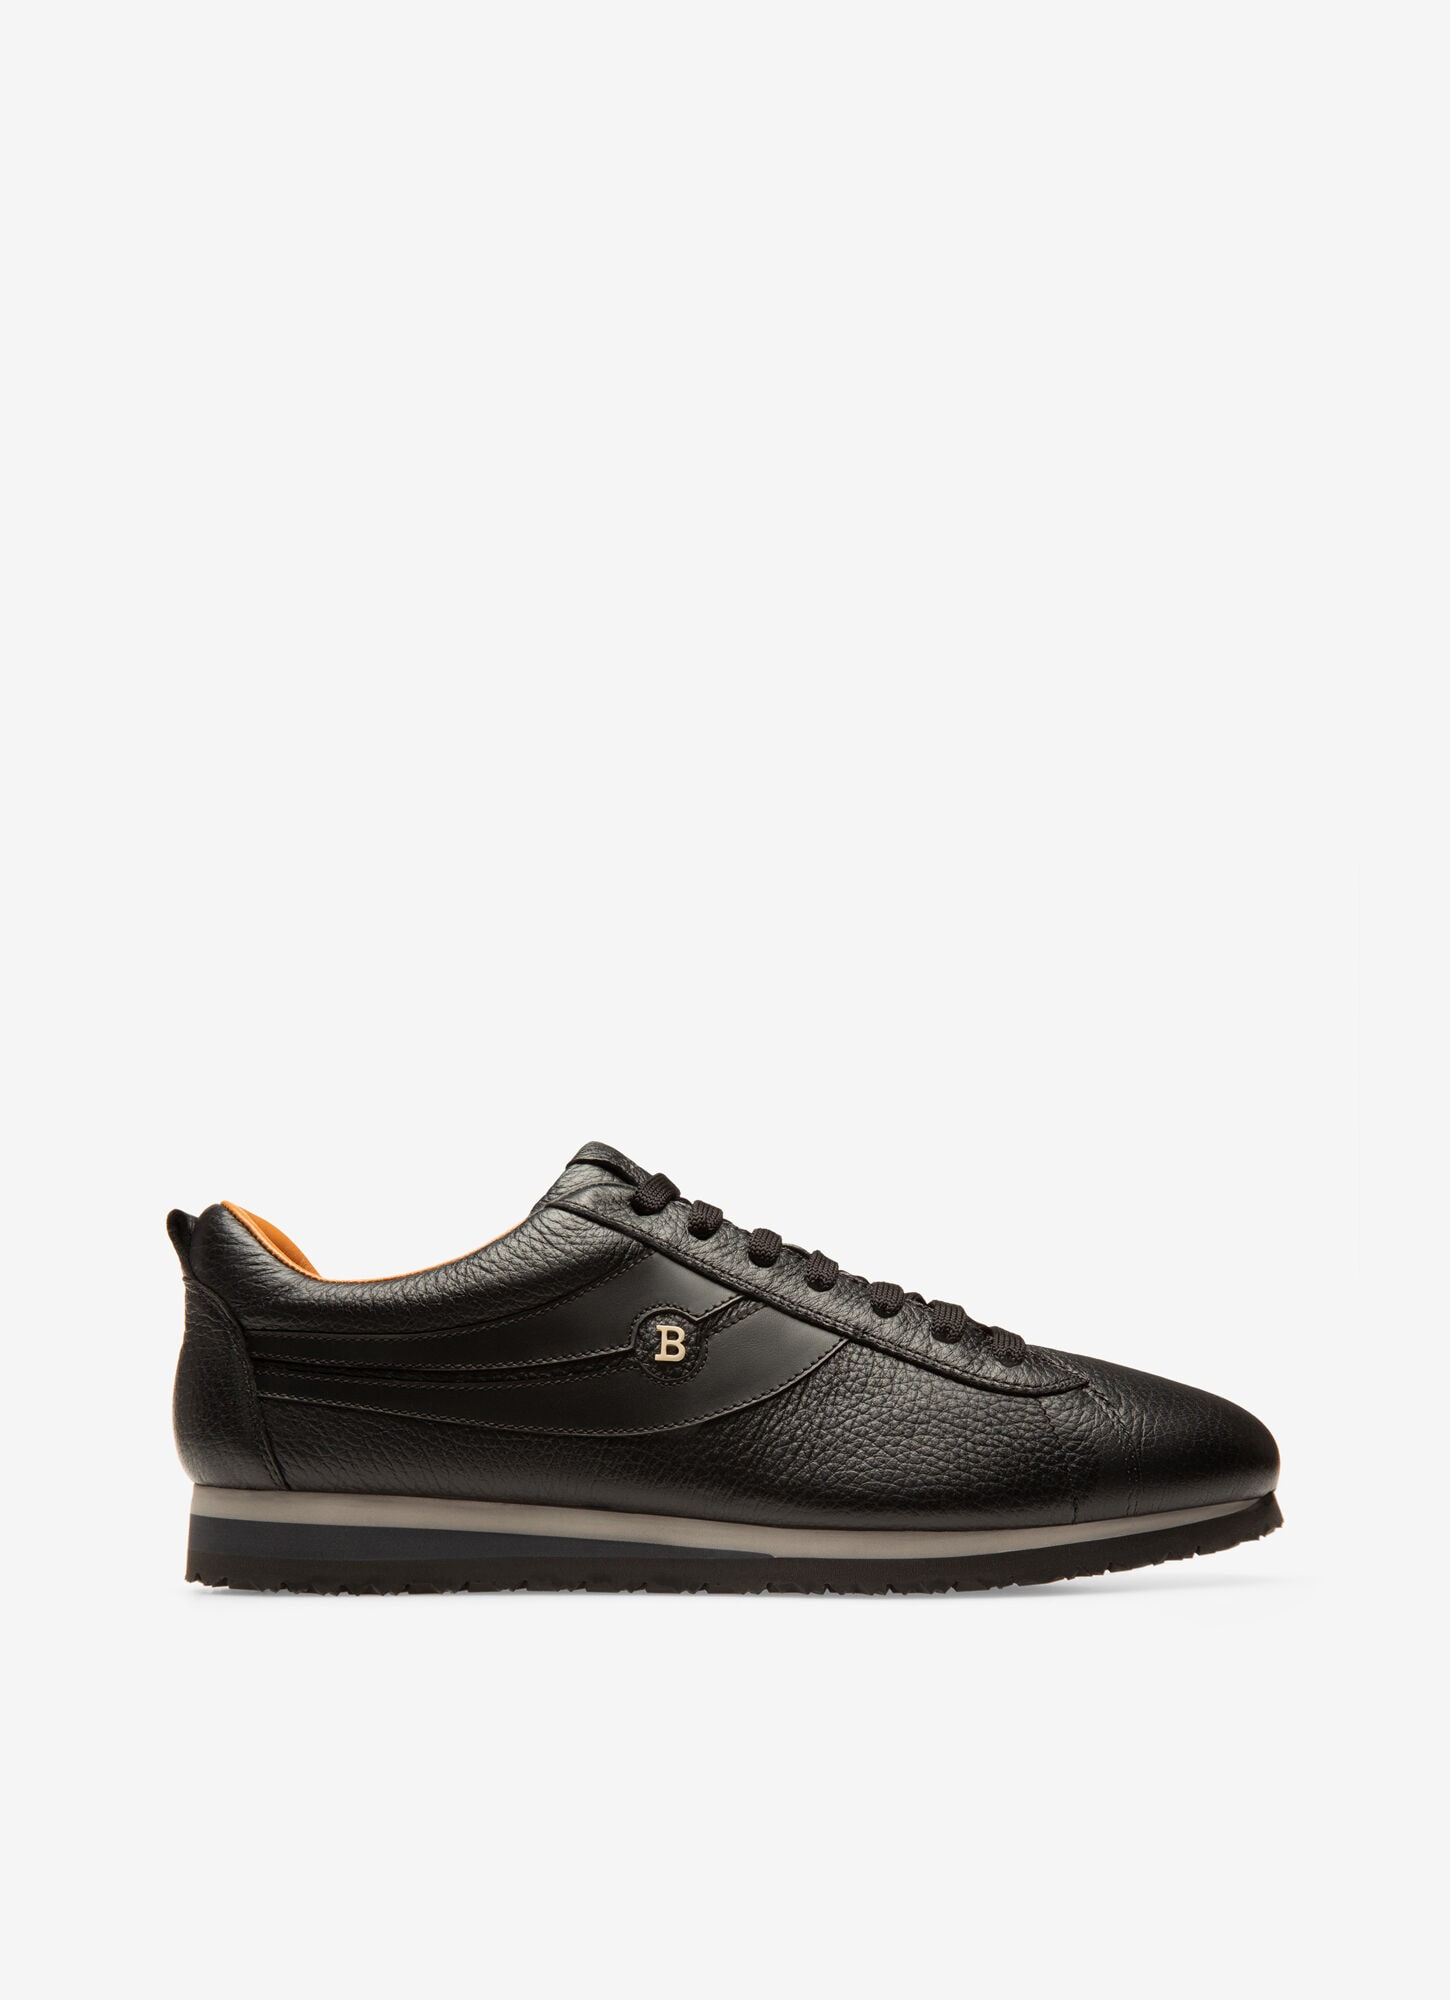 BREDY| Mens Sneakers | Black Leather